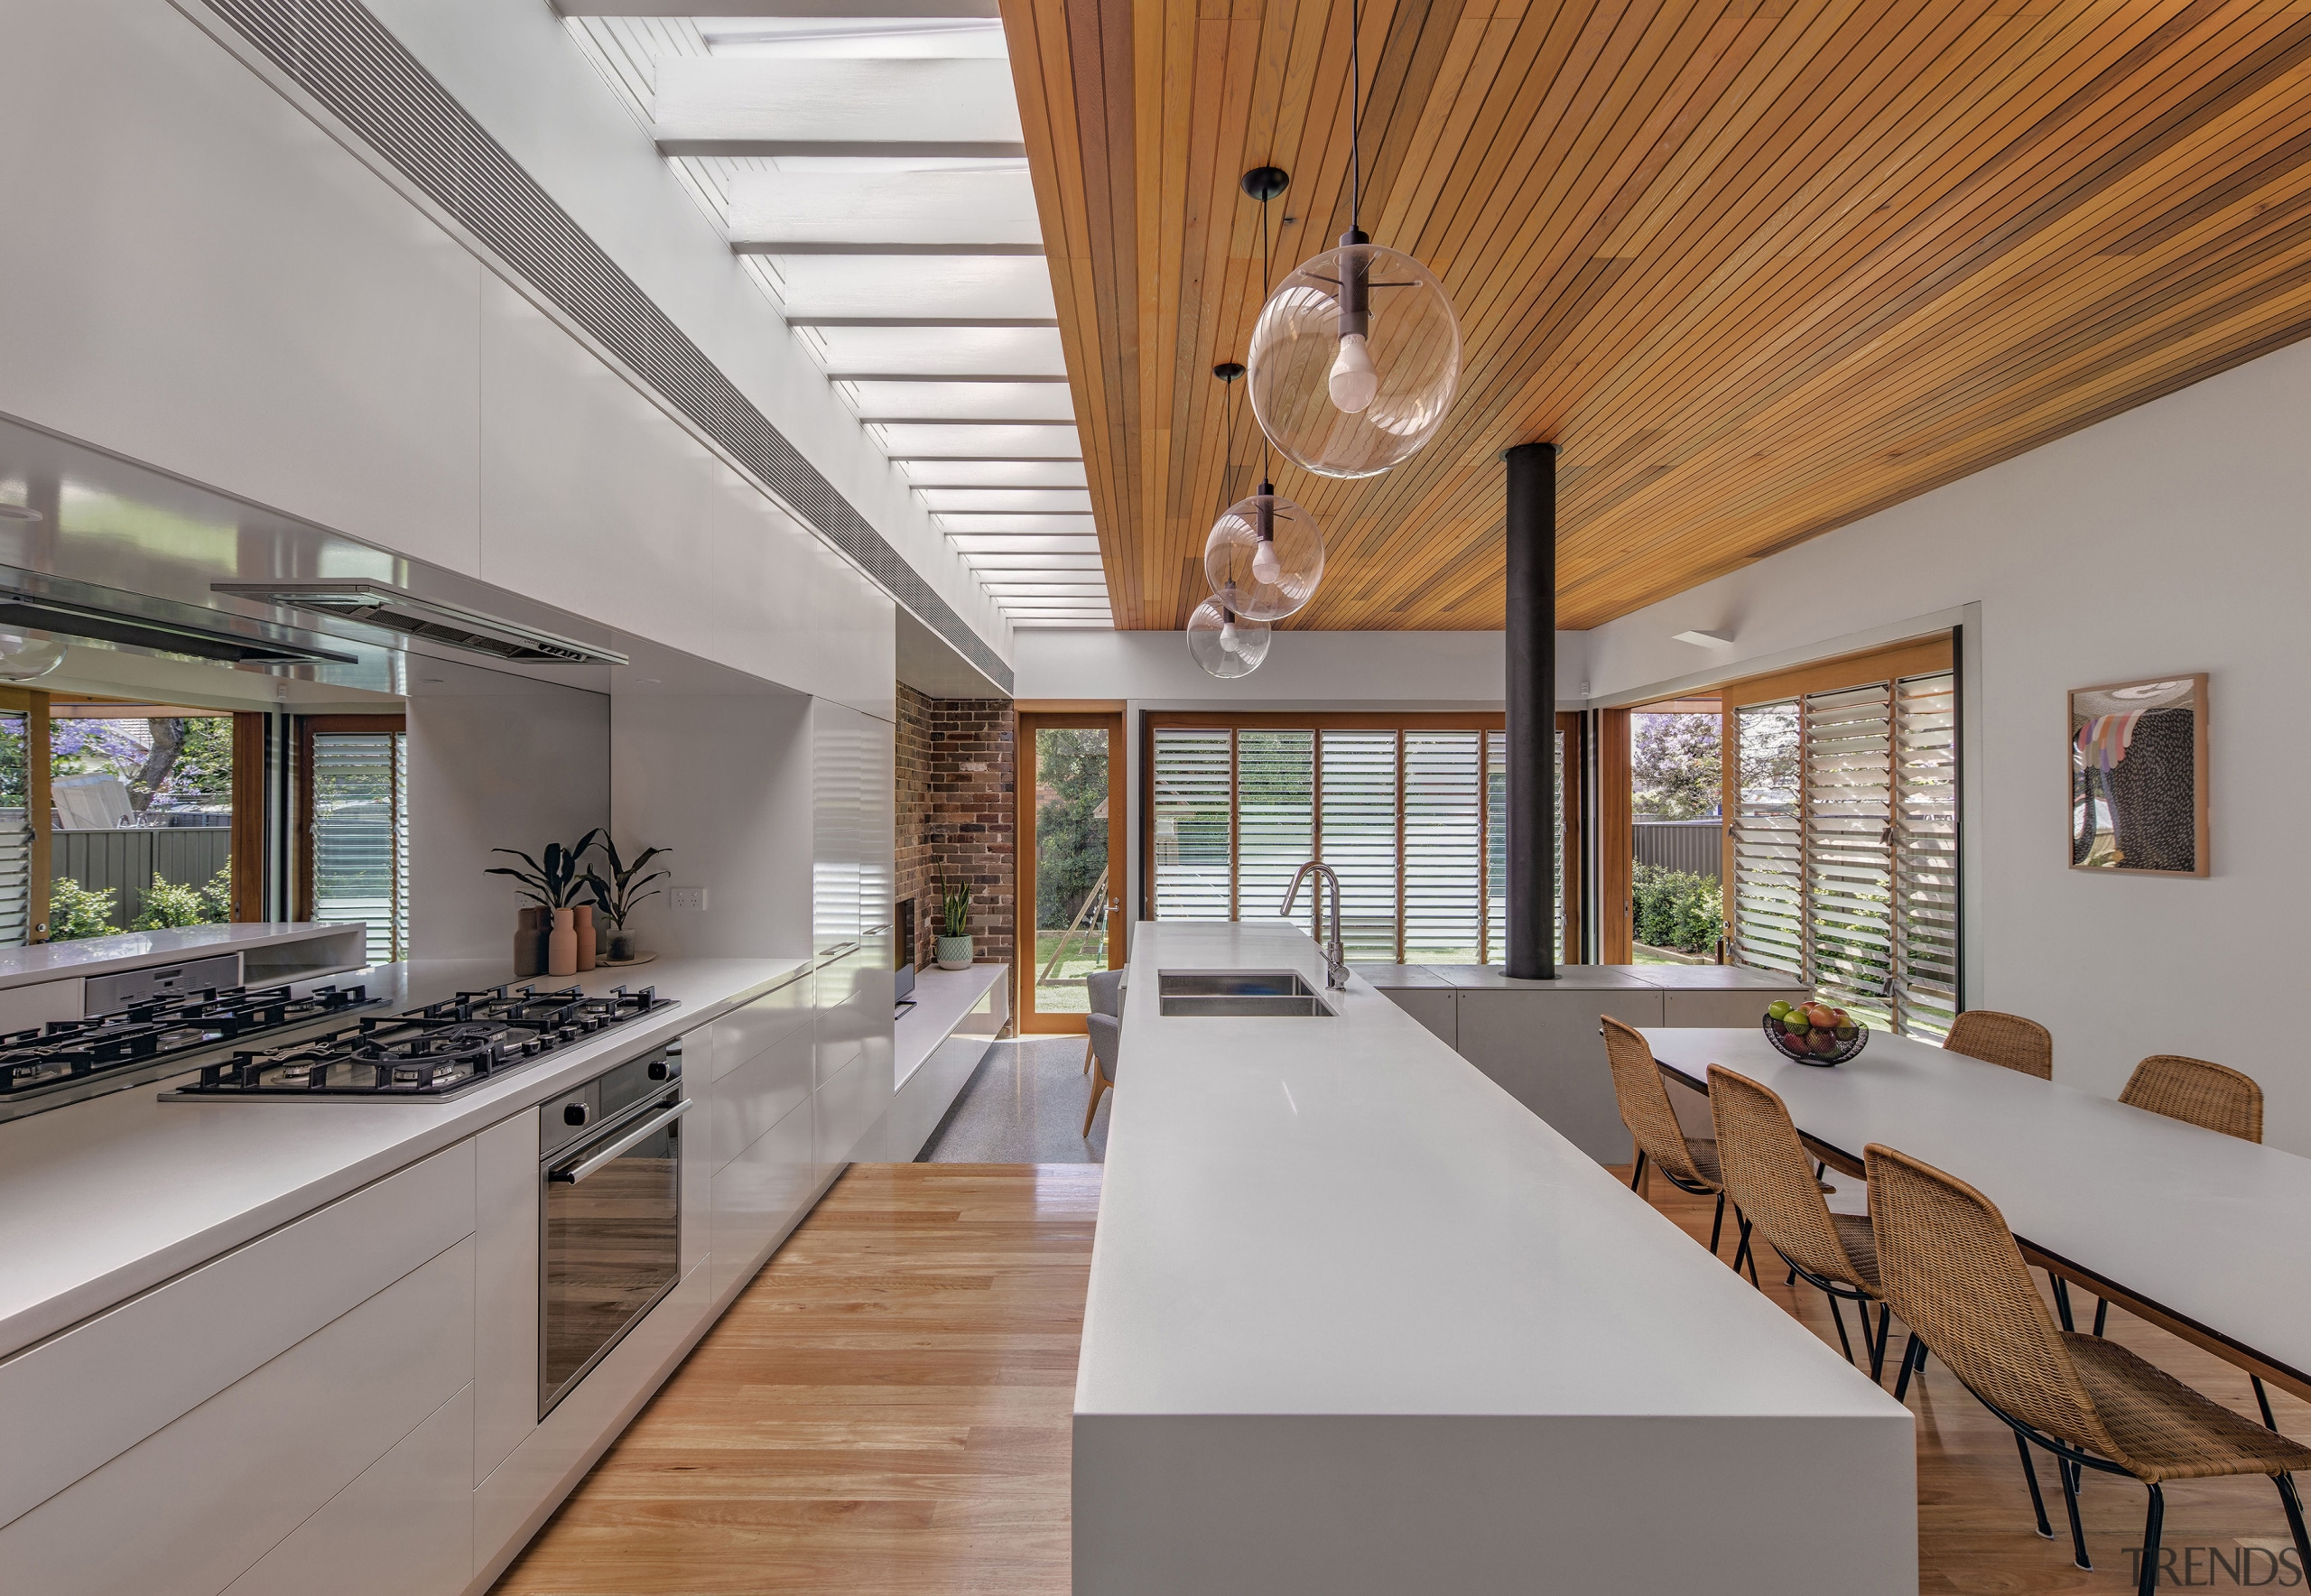 Close to the neighbours? Well, yes, but the architecture, ceiling, daylighting, estate, house, interior design, real estate, gray, brown